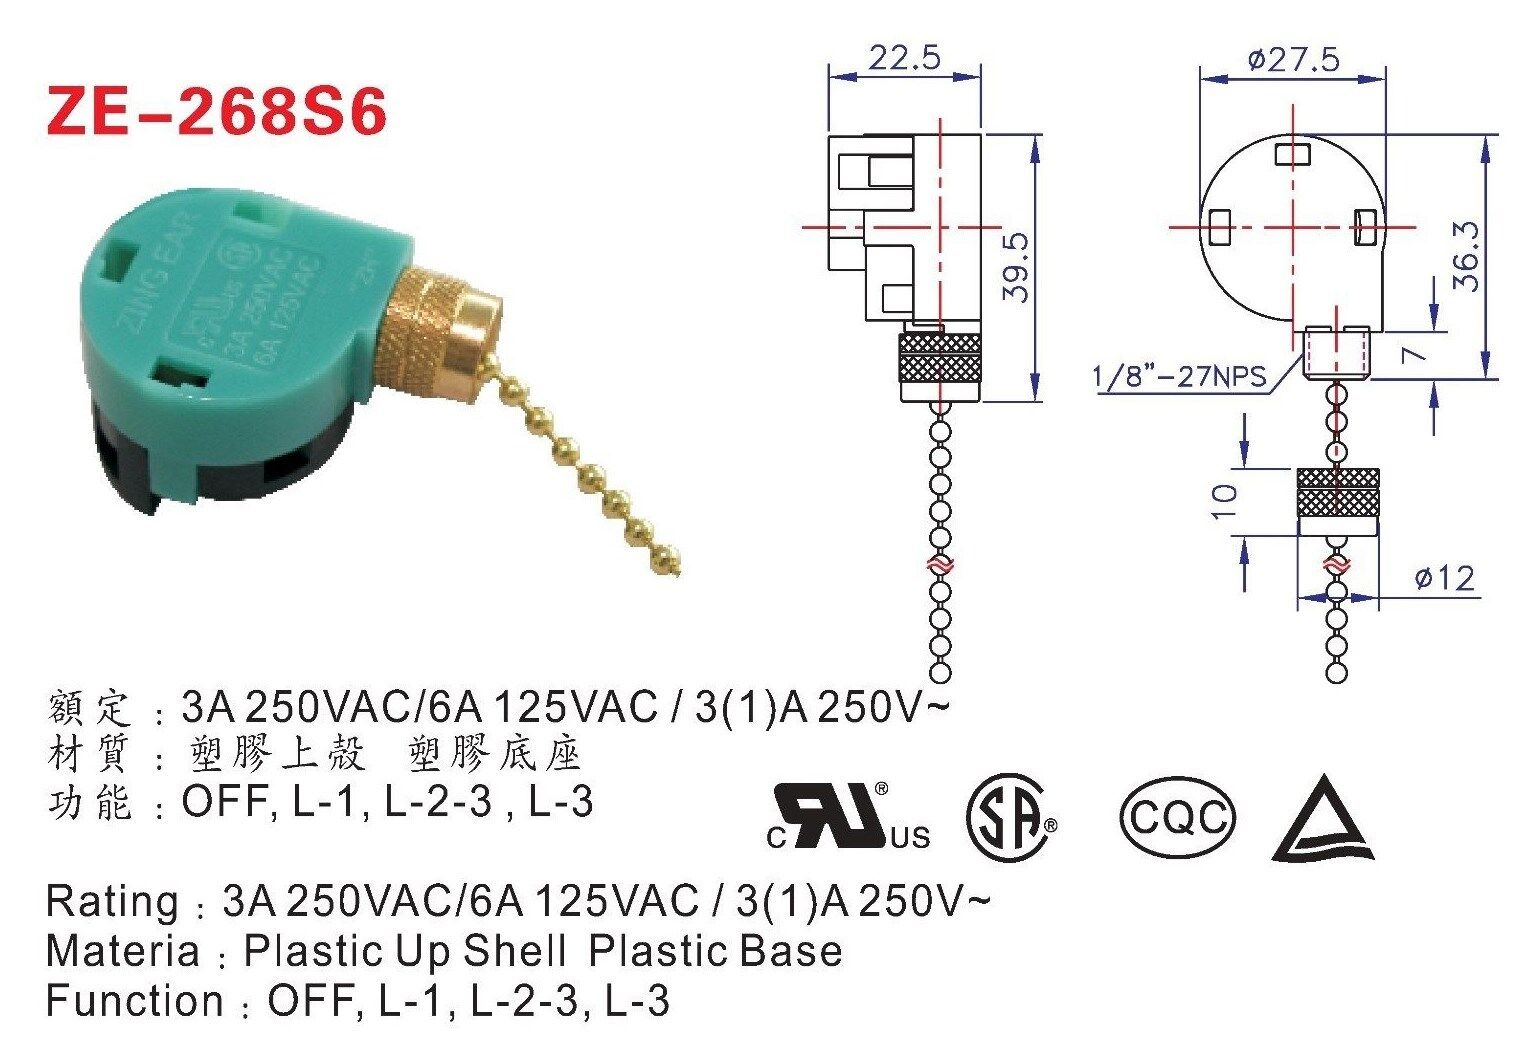 4 Way Pull Chain Switch Zing Ear Wiring Diagram Ze 268s6 3 Speed Wire Green Brass Fan Rh Picclick